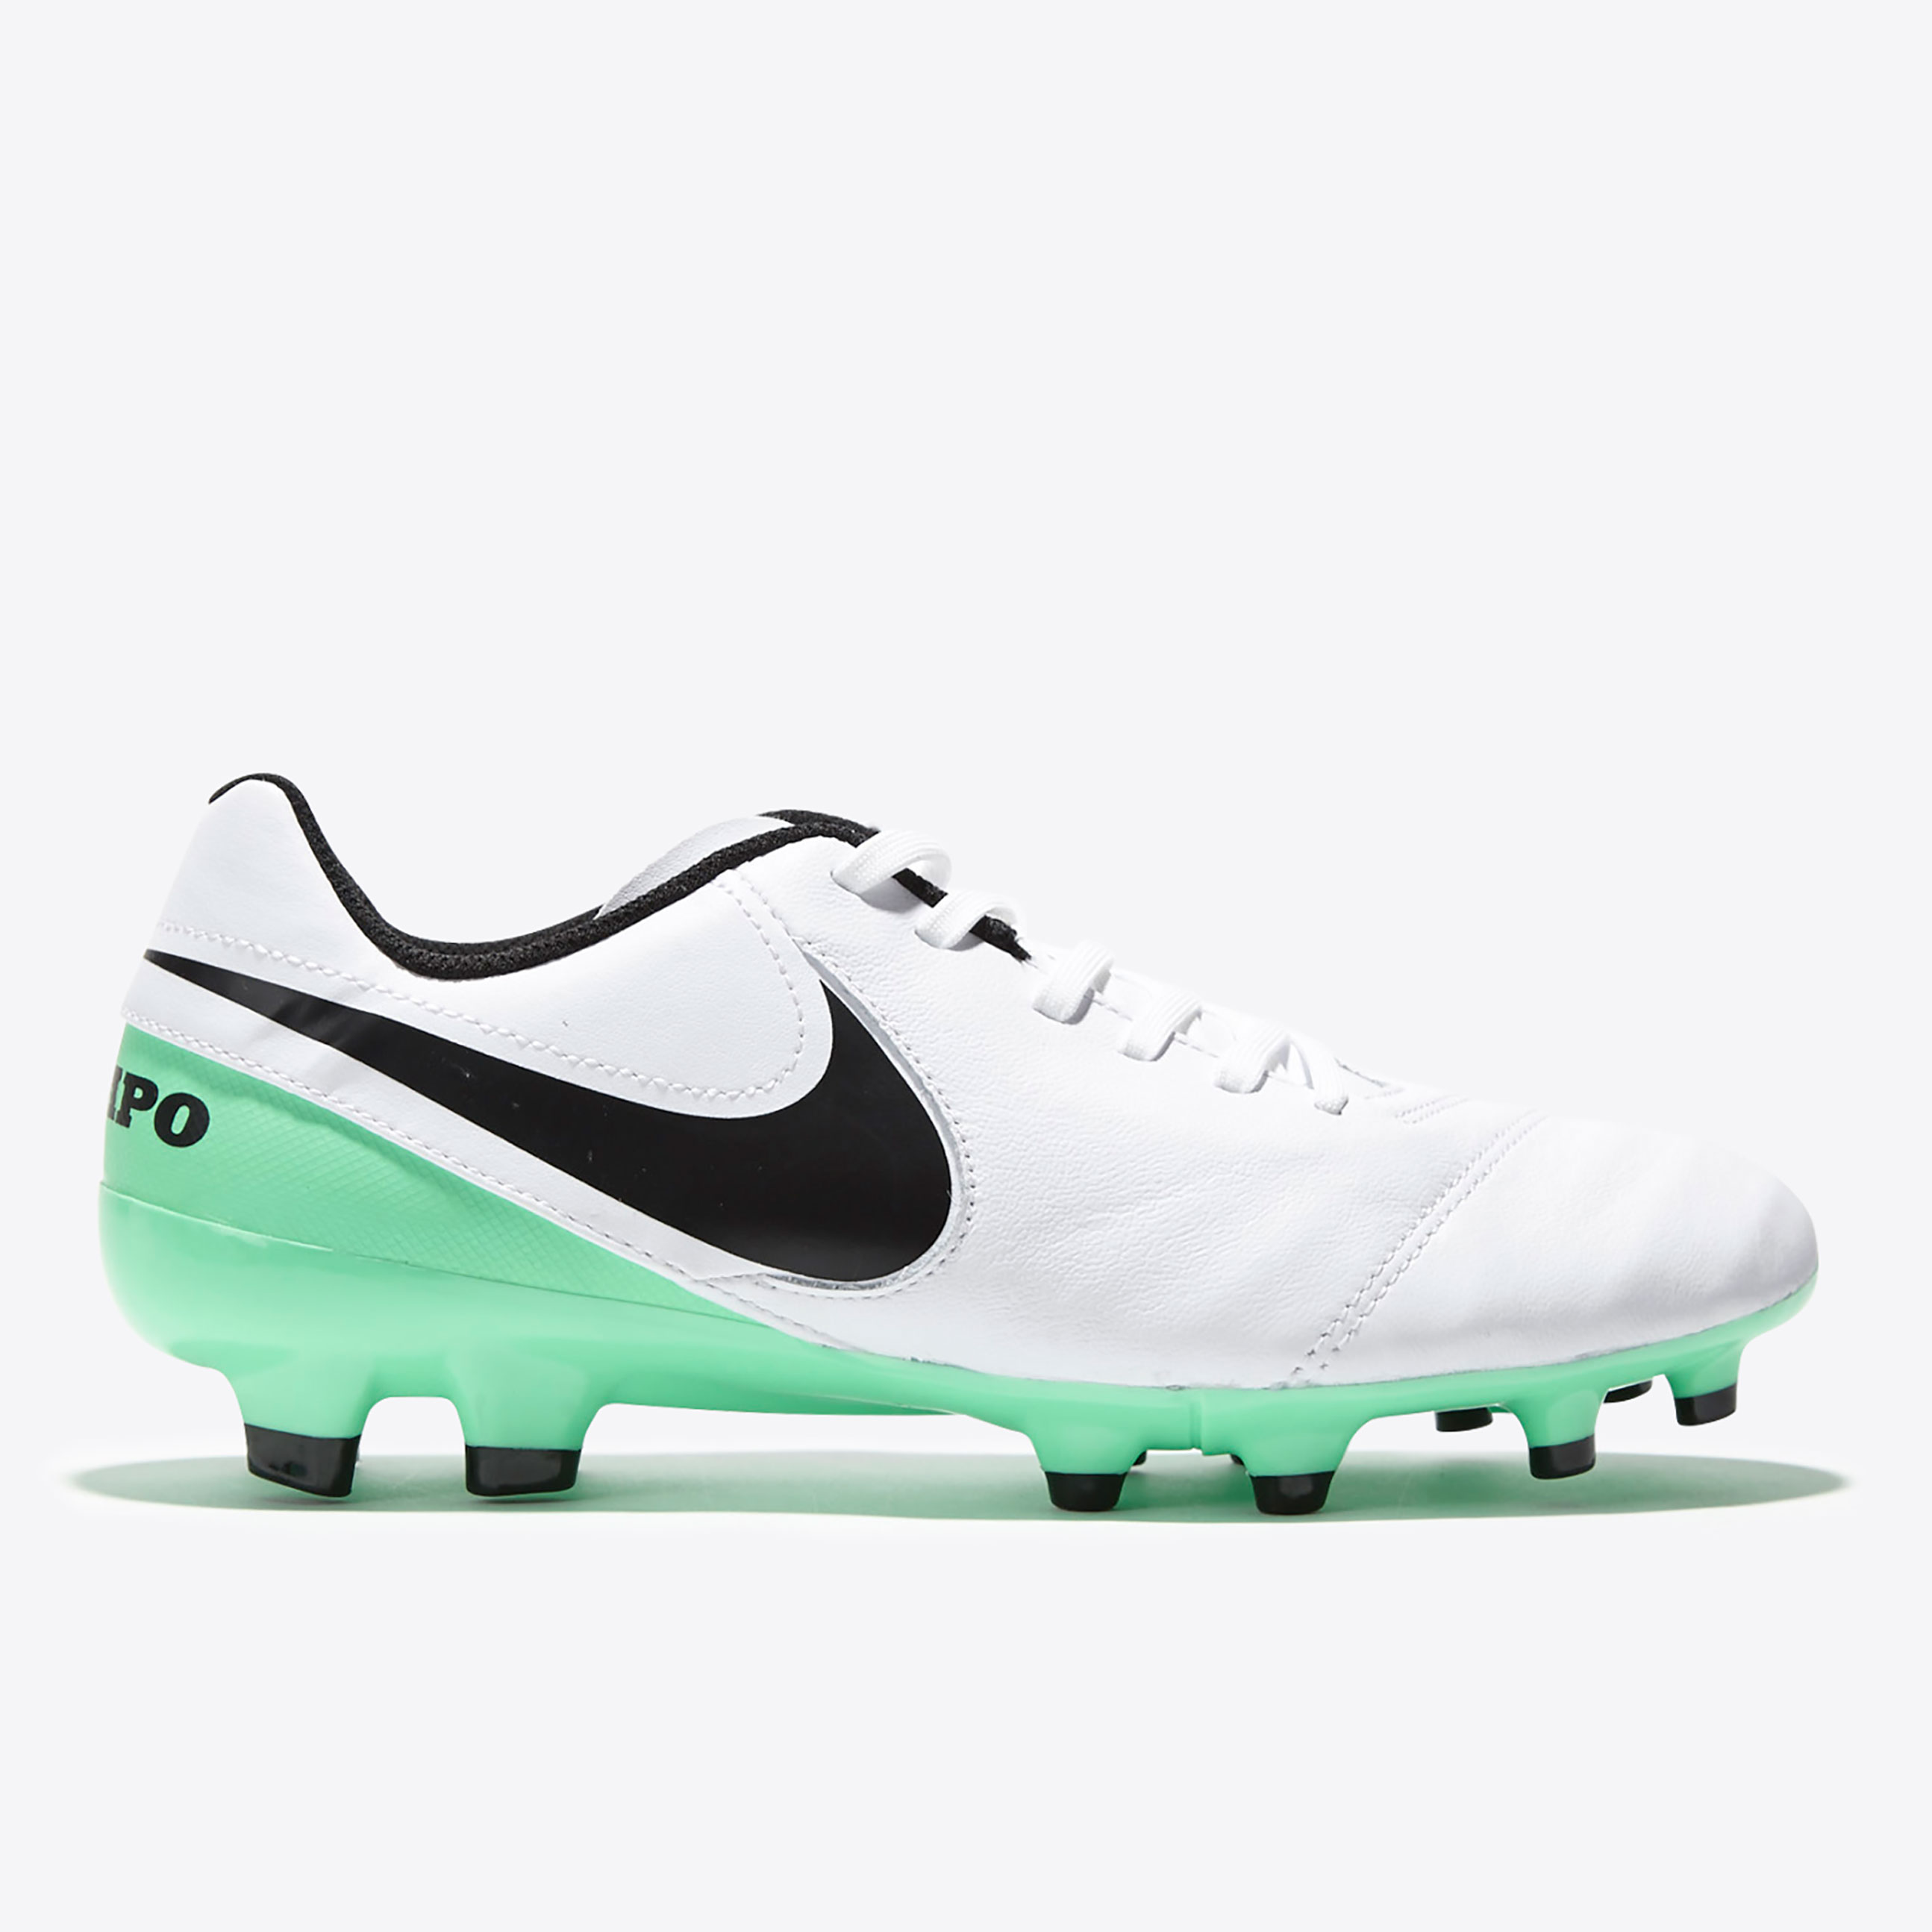 929bead7c2b tiempo legend green on sale   OFF58% Discounts